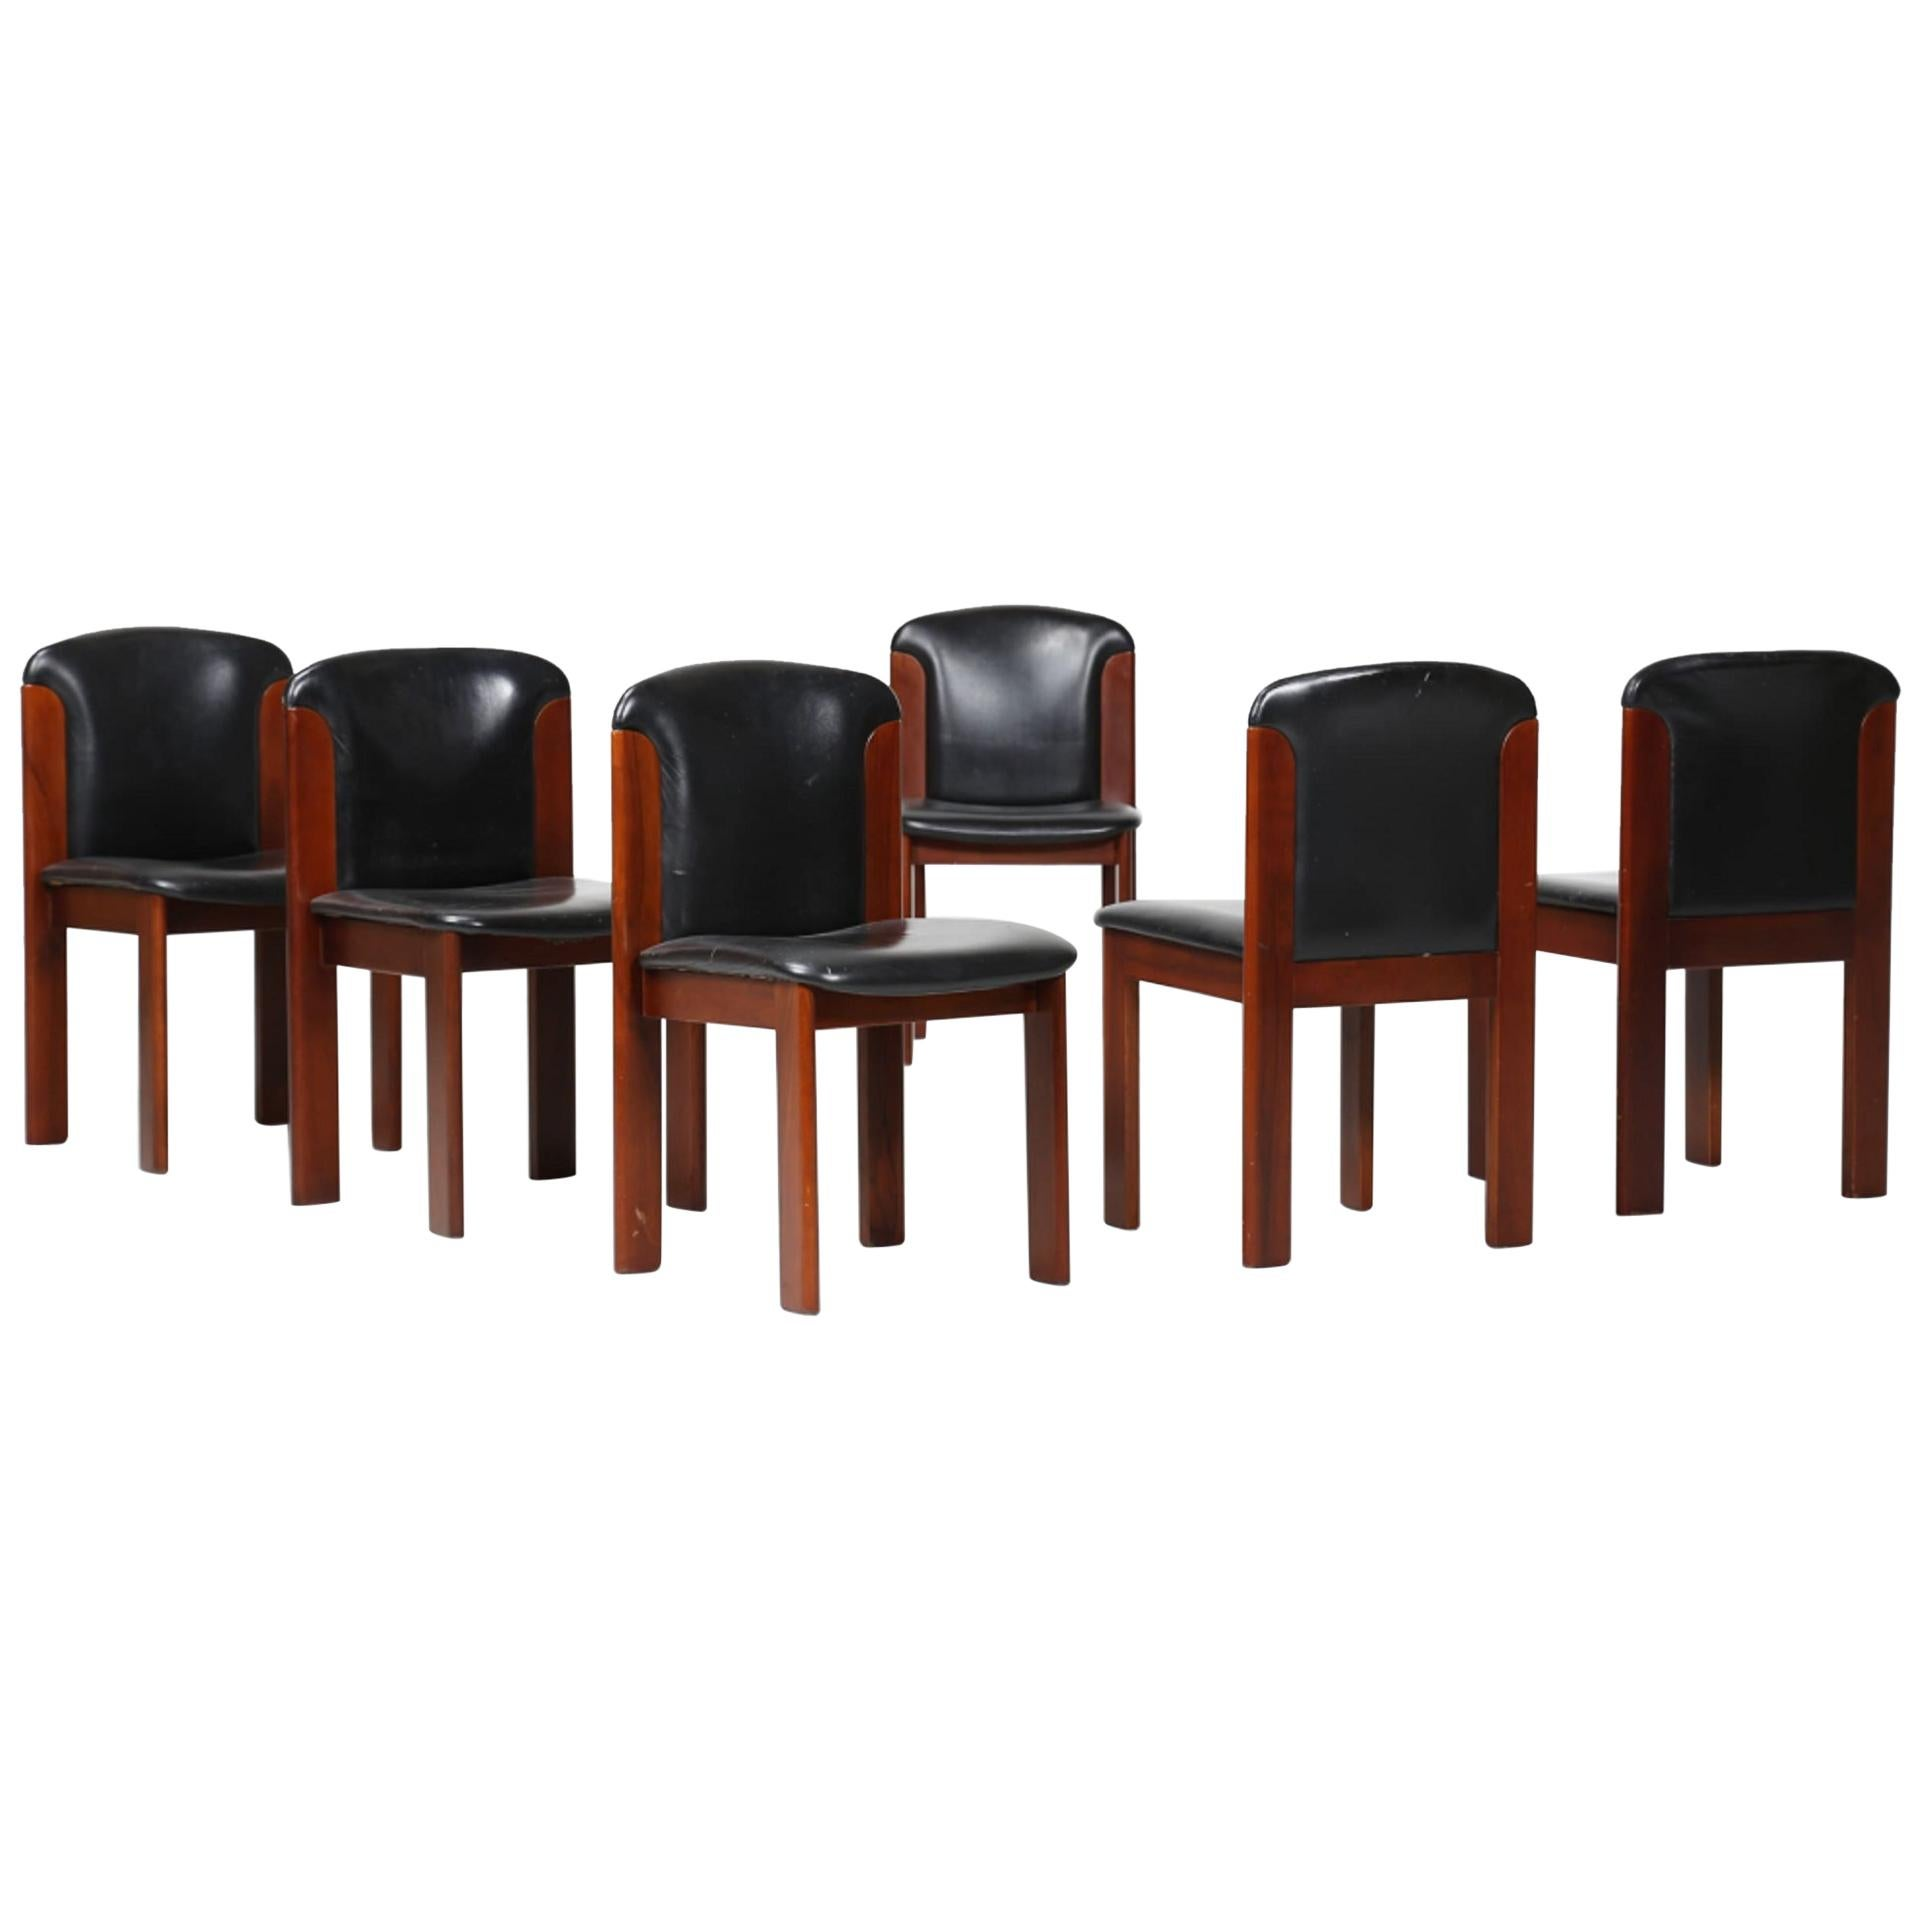 Six Vintage Chairs by Silvio Coppola, Italy, 1960s